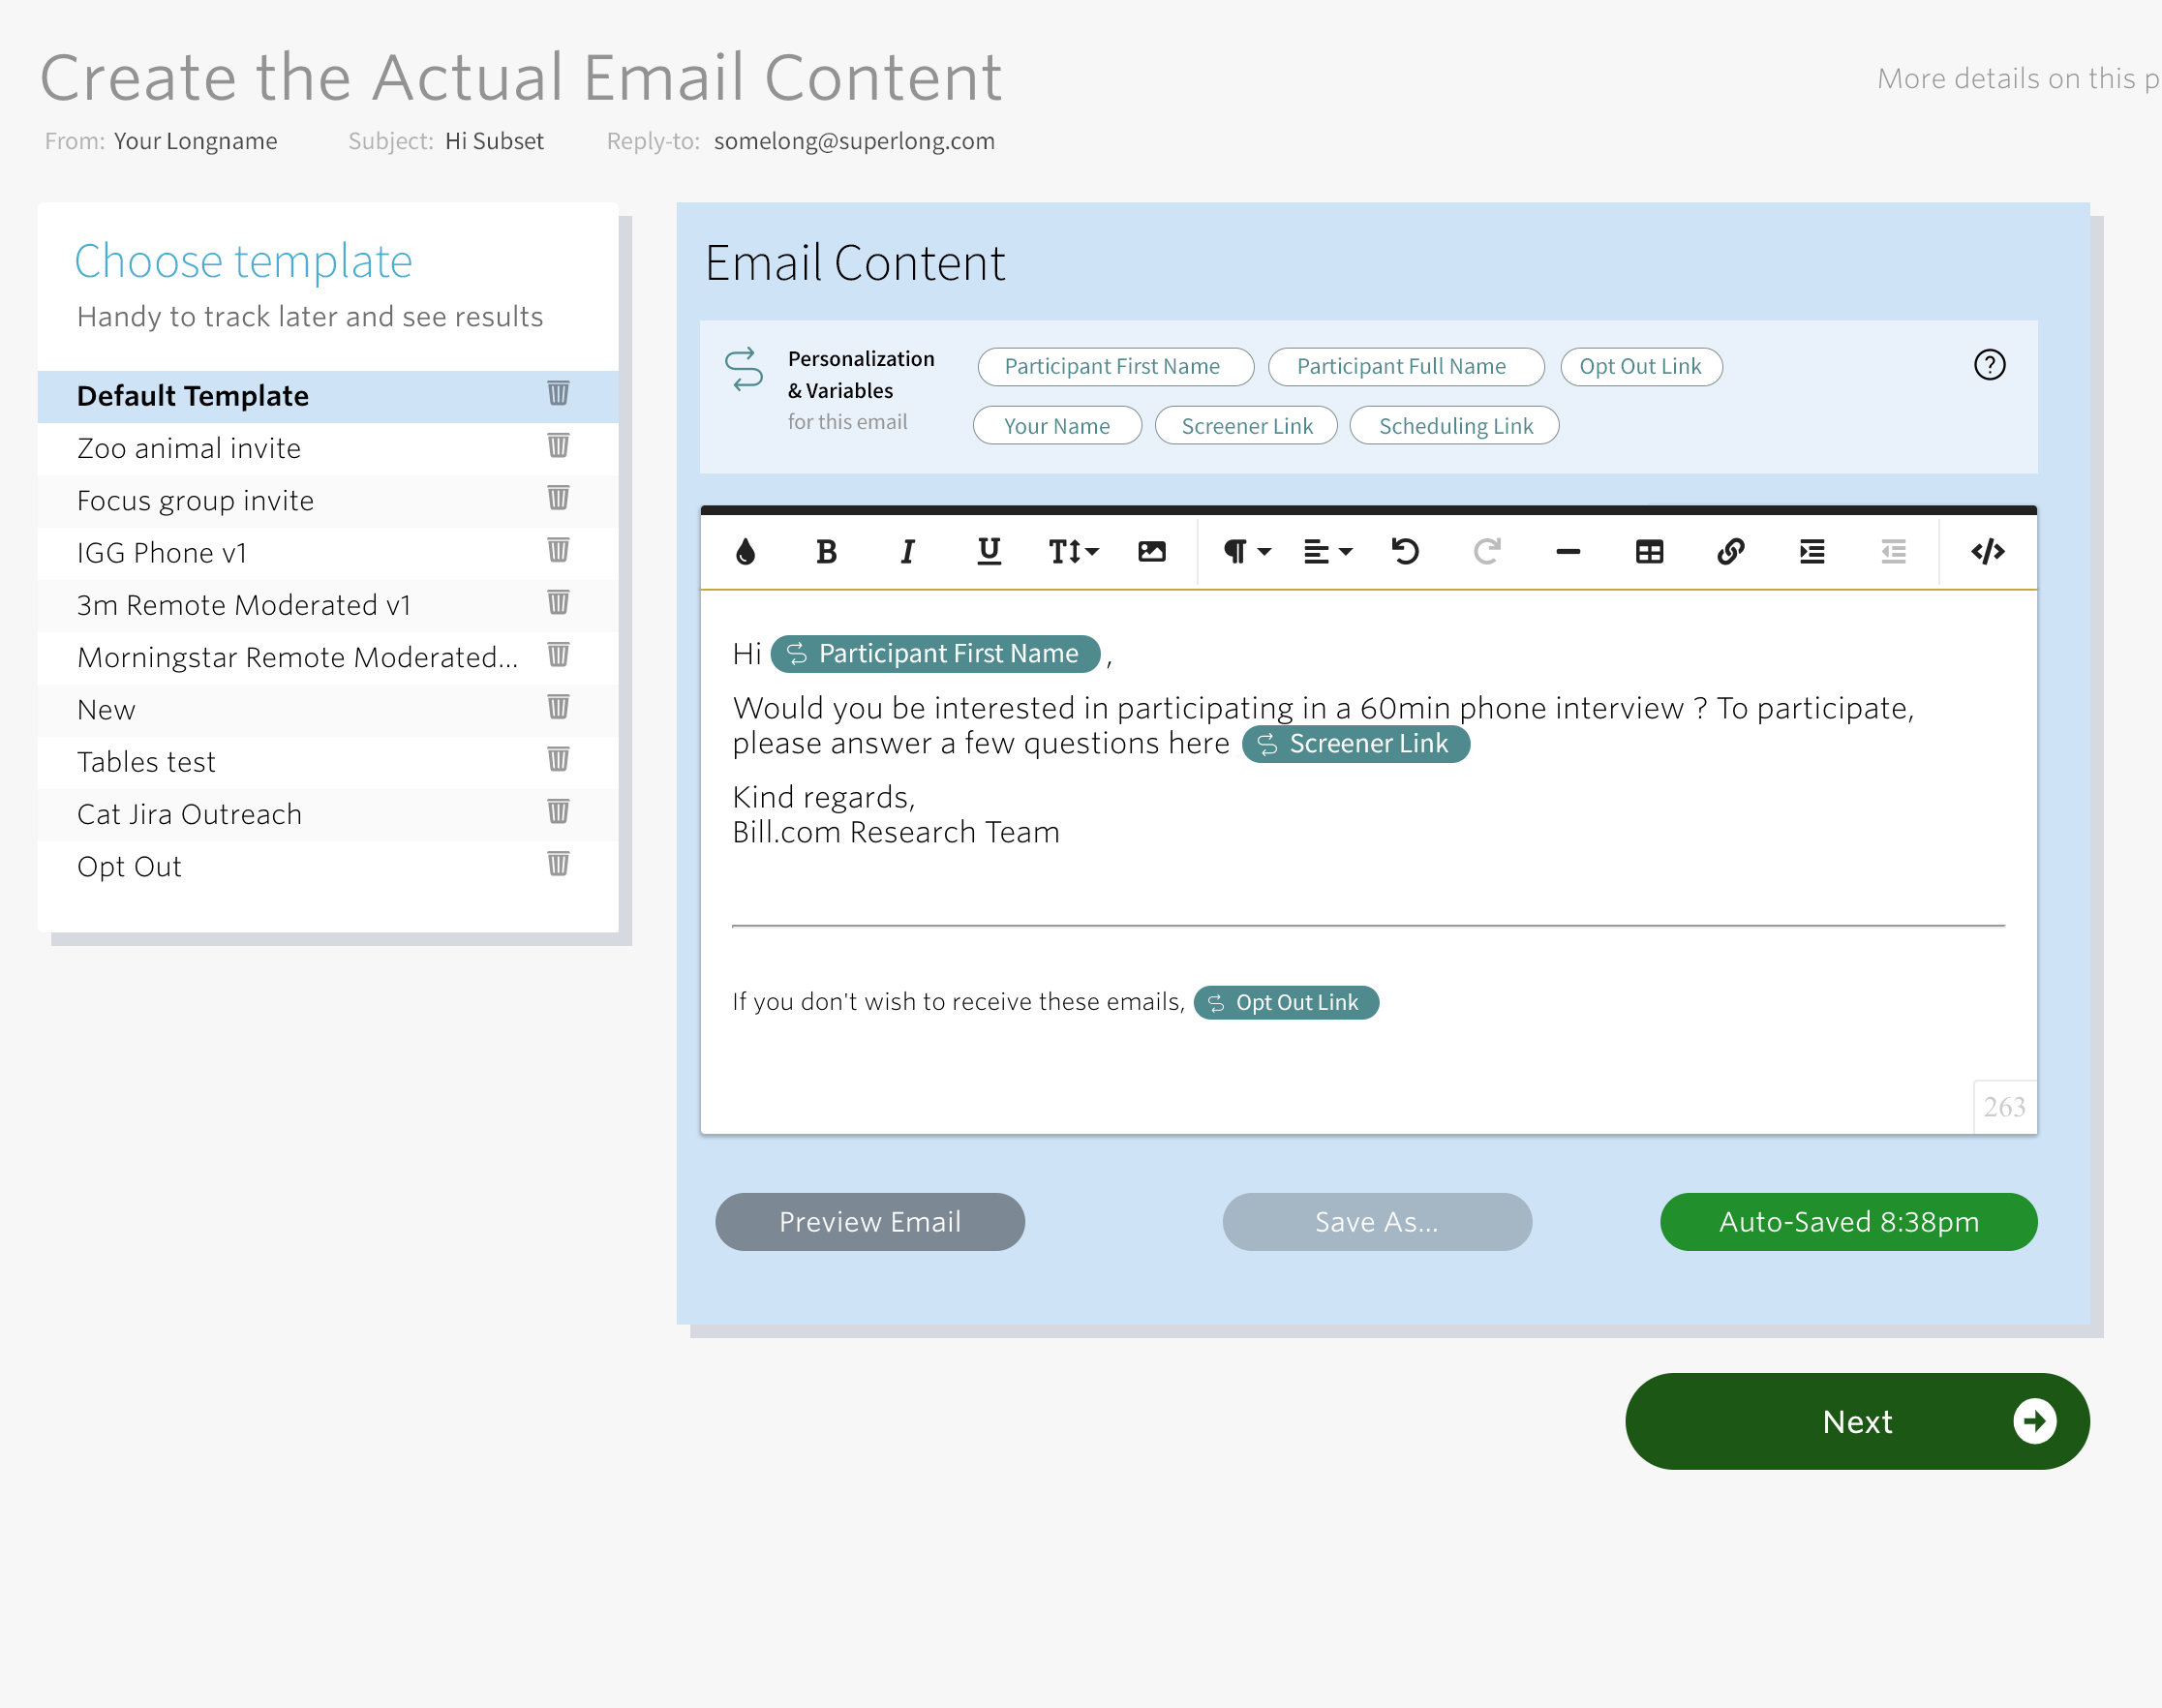 Email content variables